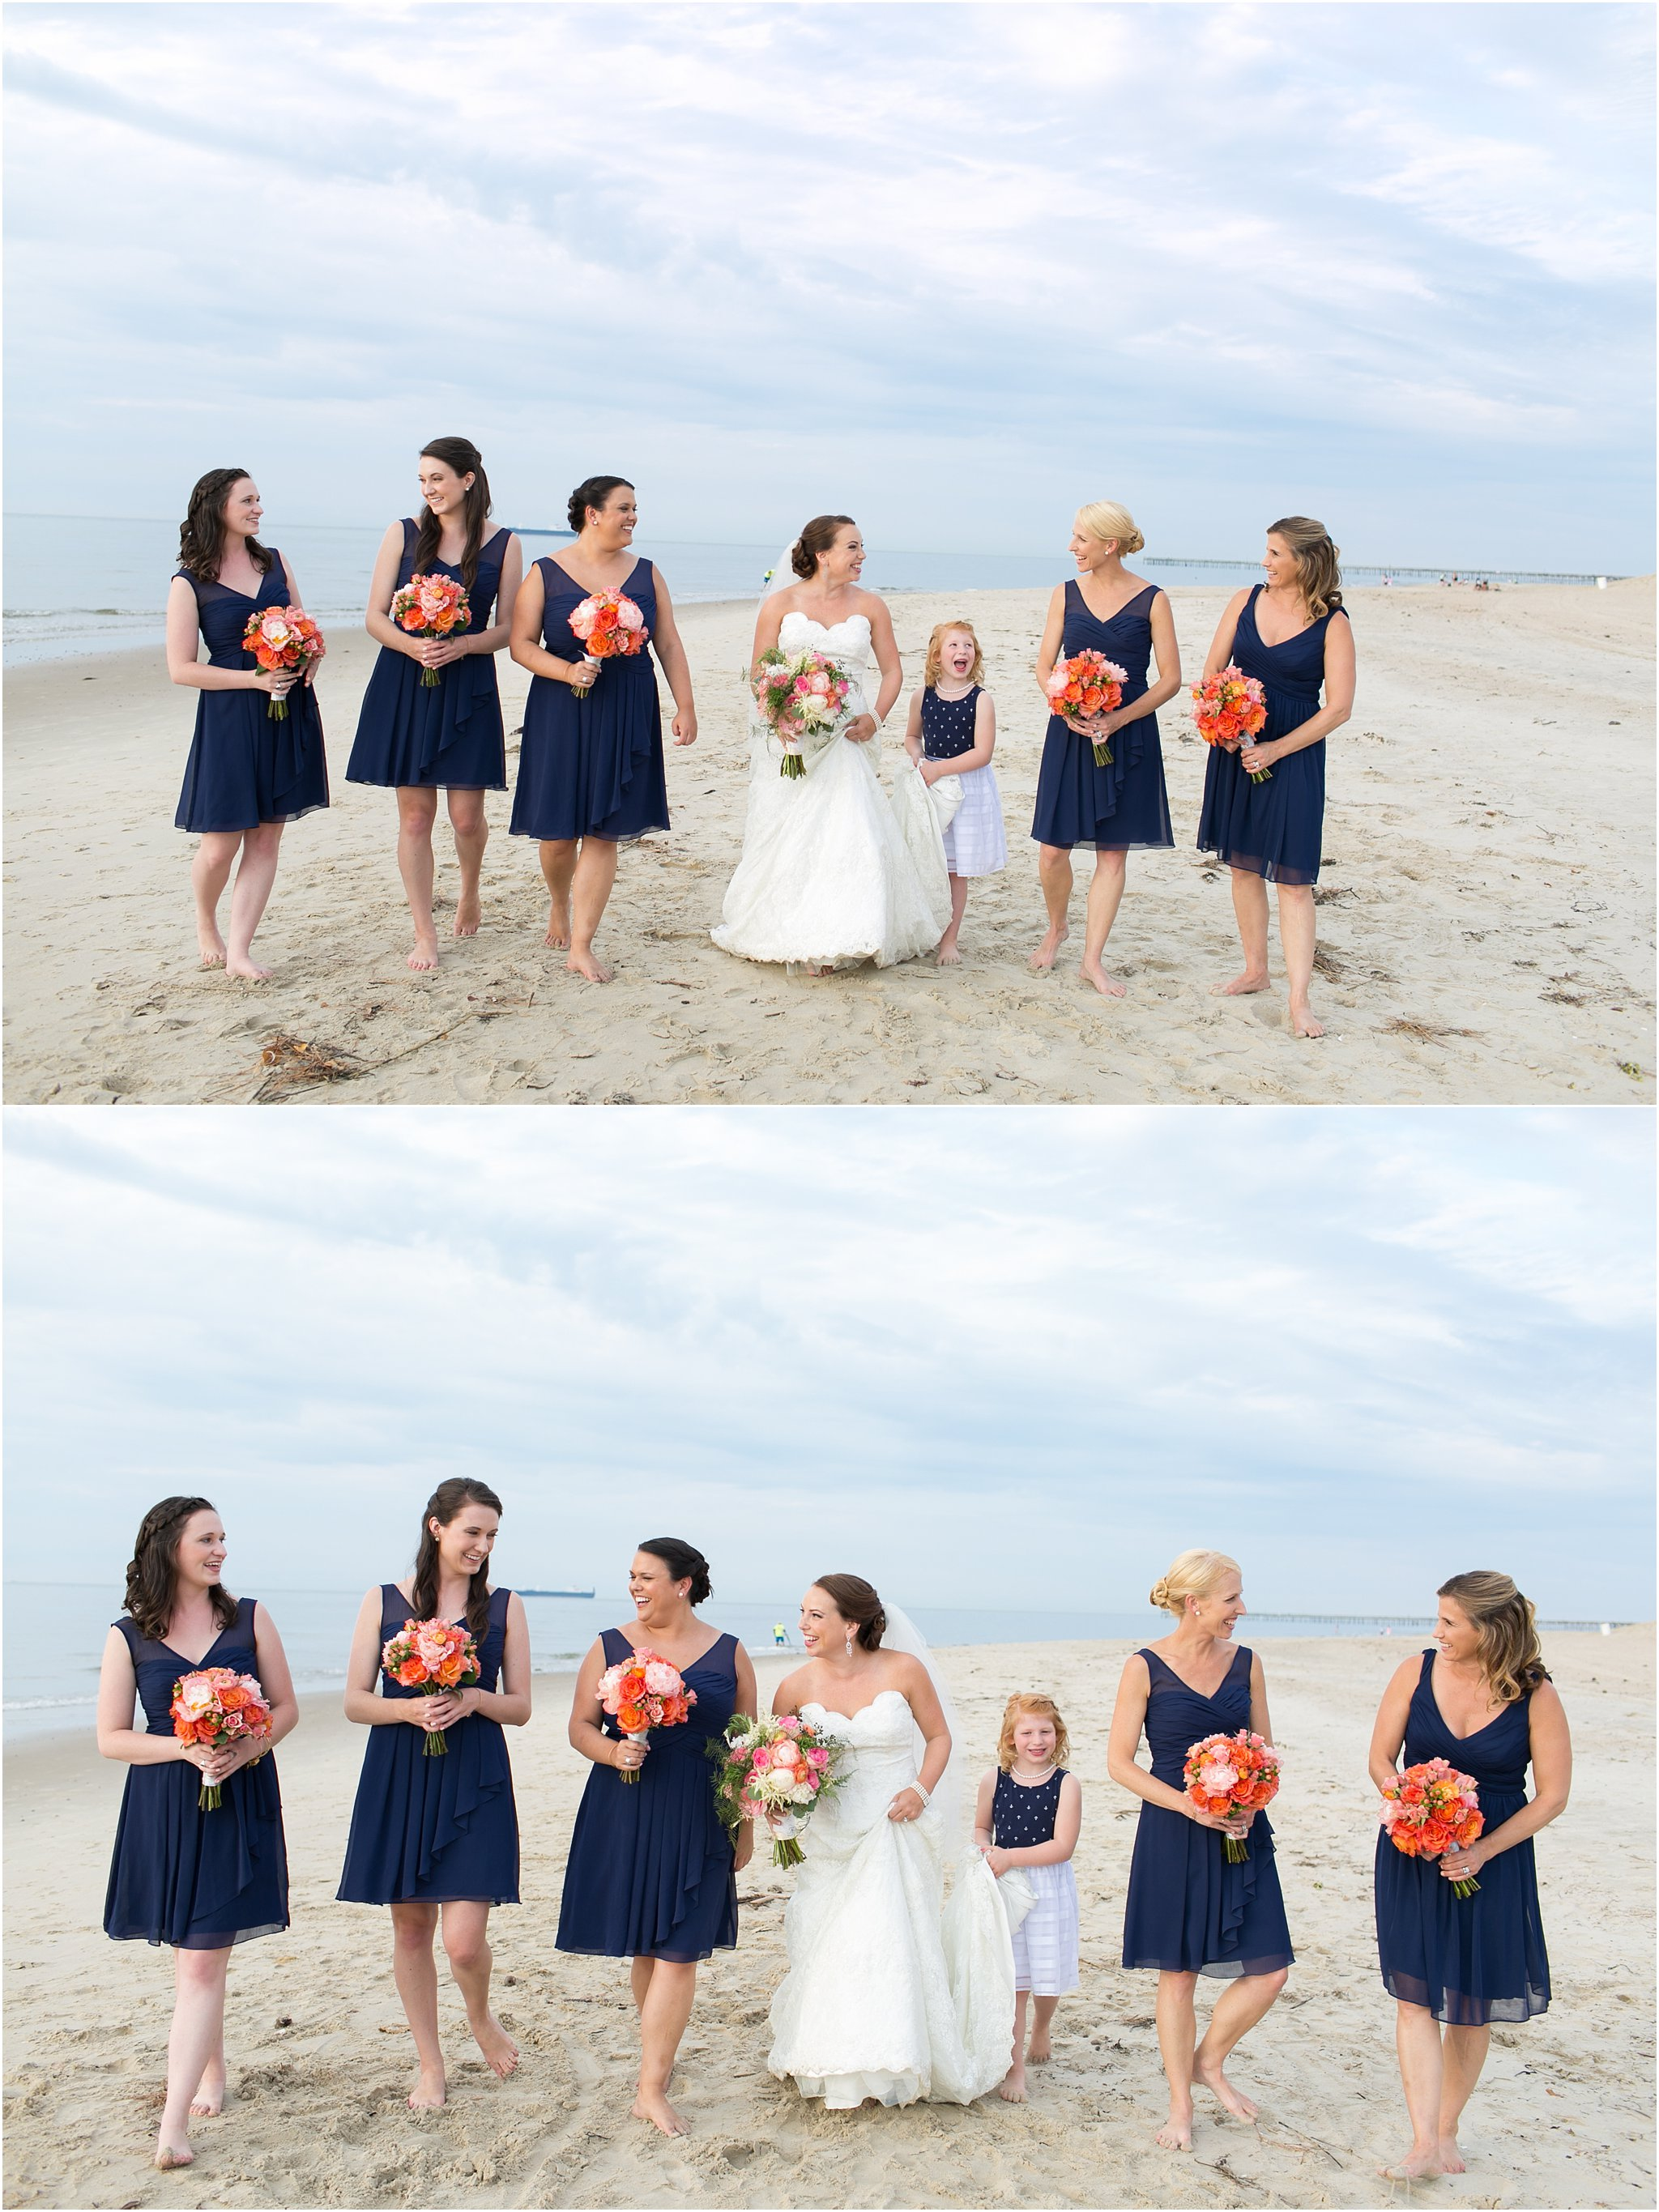 jessica_ryan_photography_wedding_photography_virginiabeach_virginia_candid_authentic_wedding_portraits_marina_shores_yacht_club_chesapeake_bay_1868